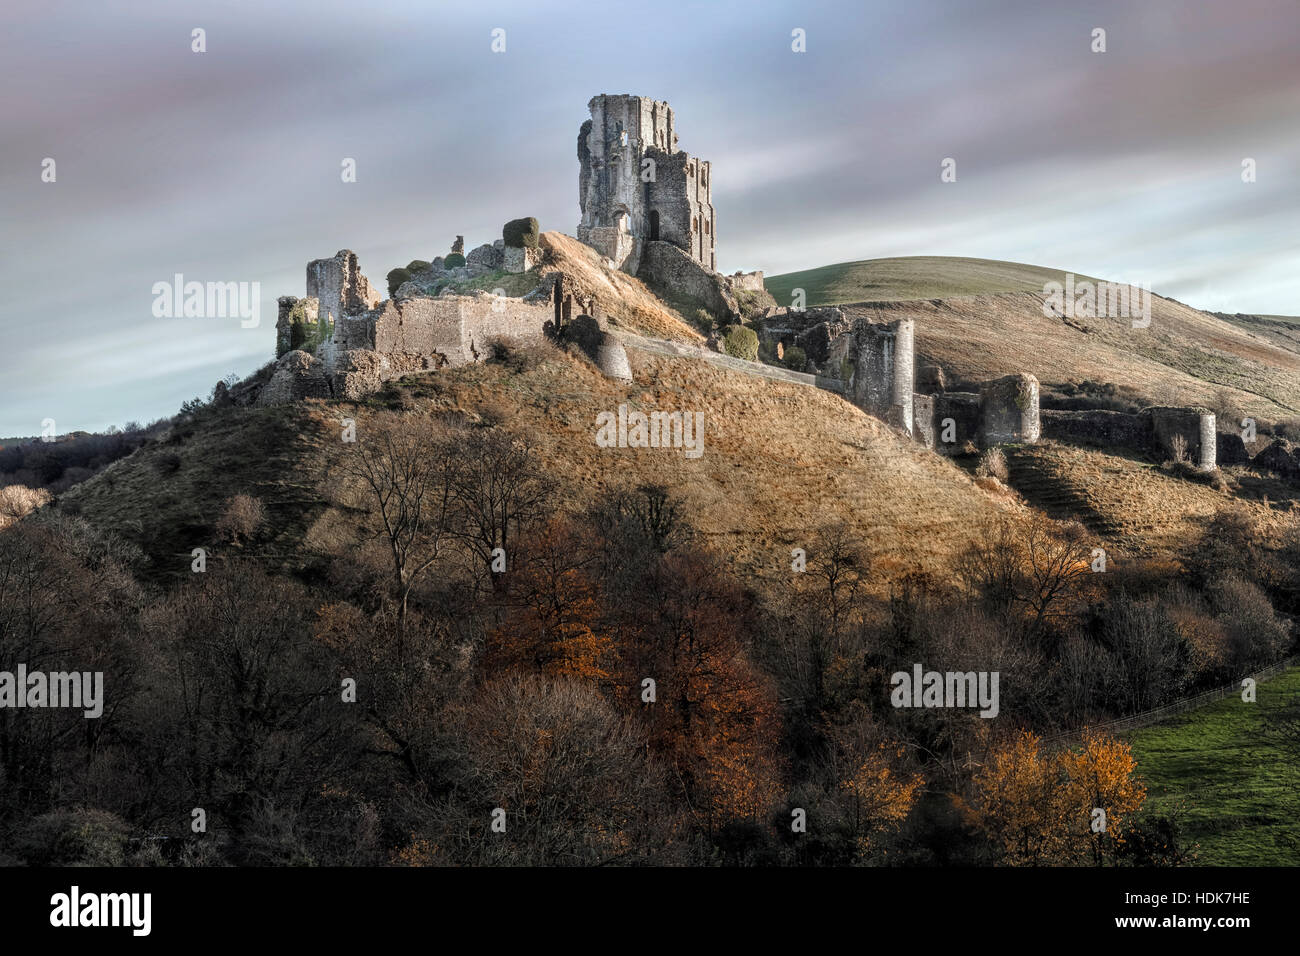 Corfe Castle, Dorset, England, UK Stockbild